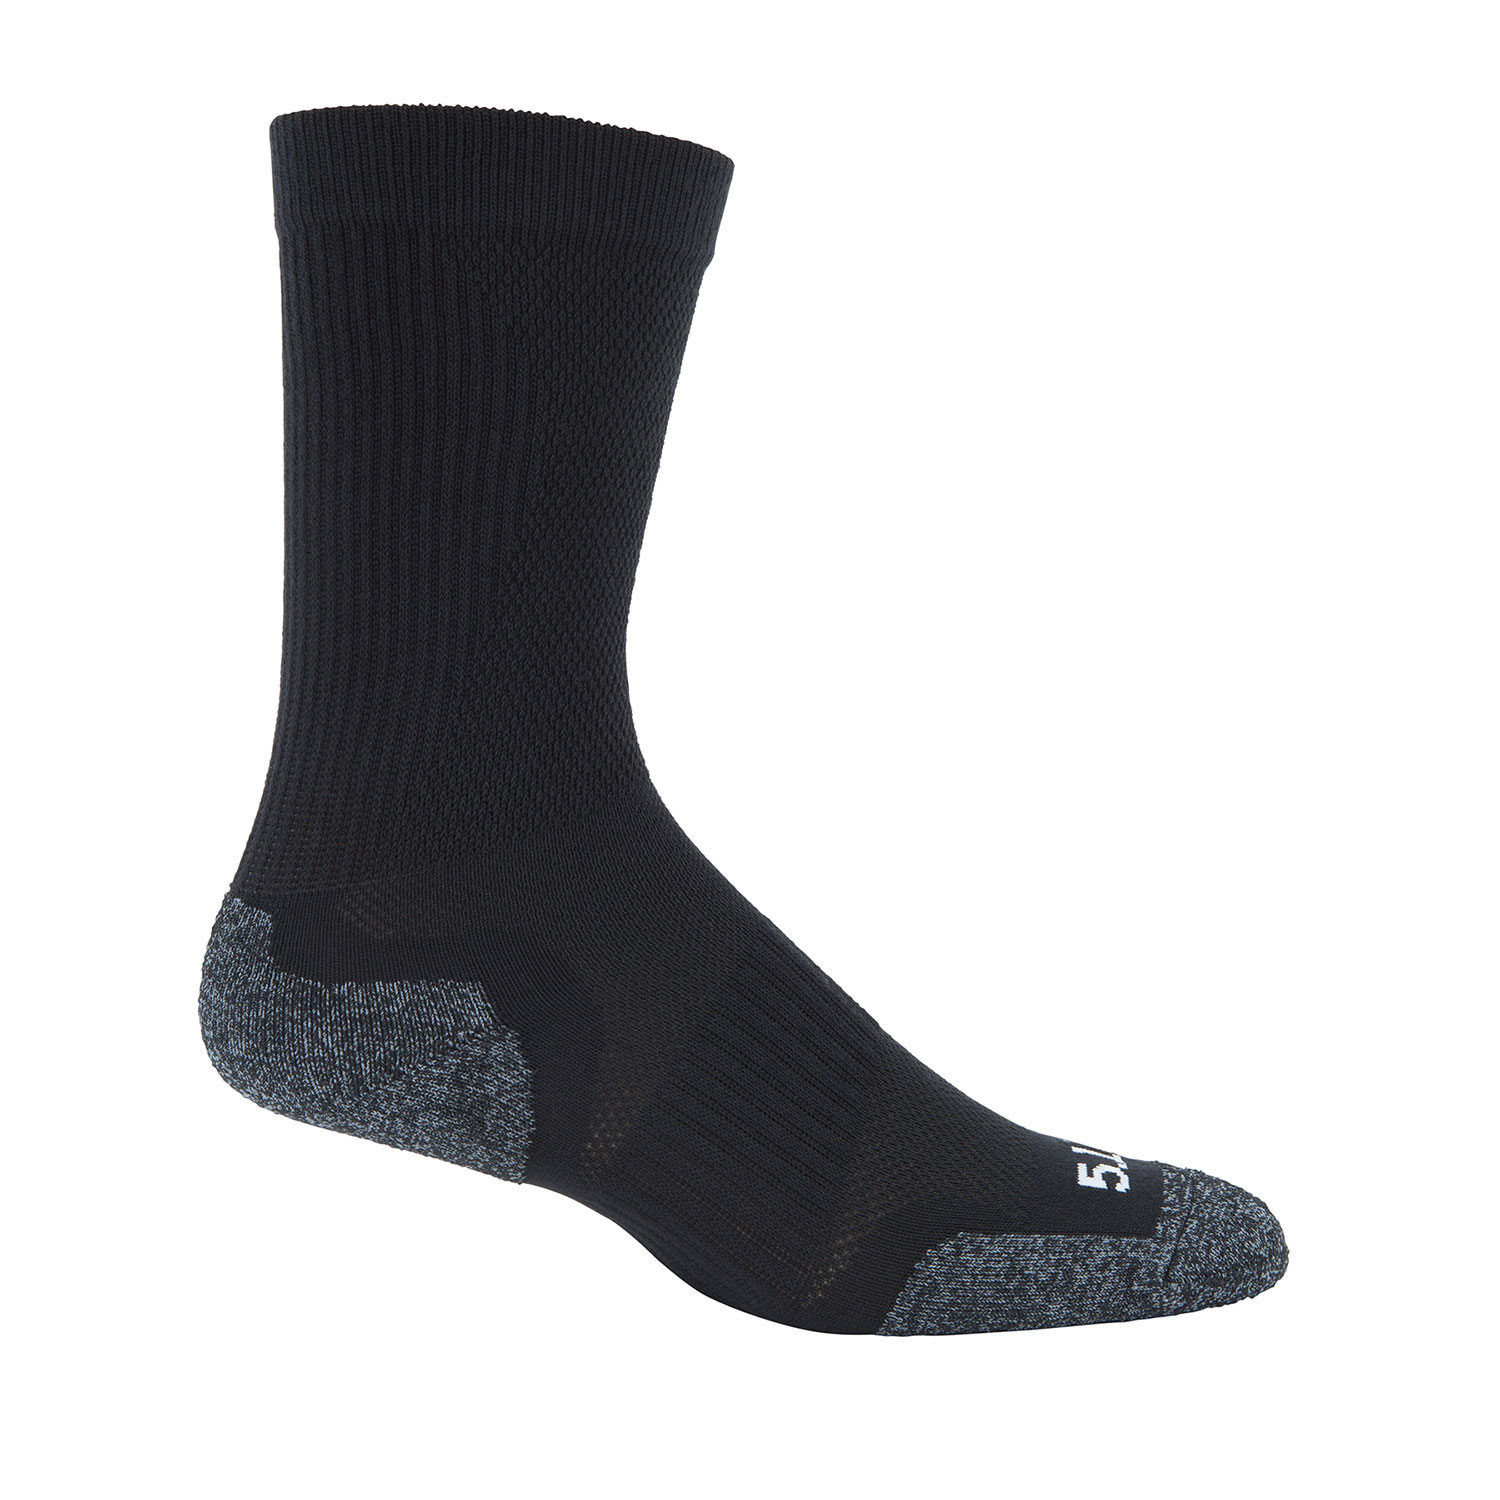 5.11 Slip Stream Over The Calf Socks